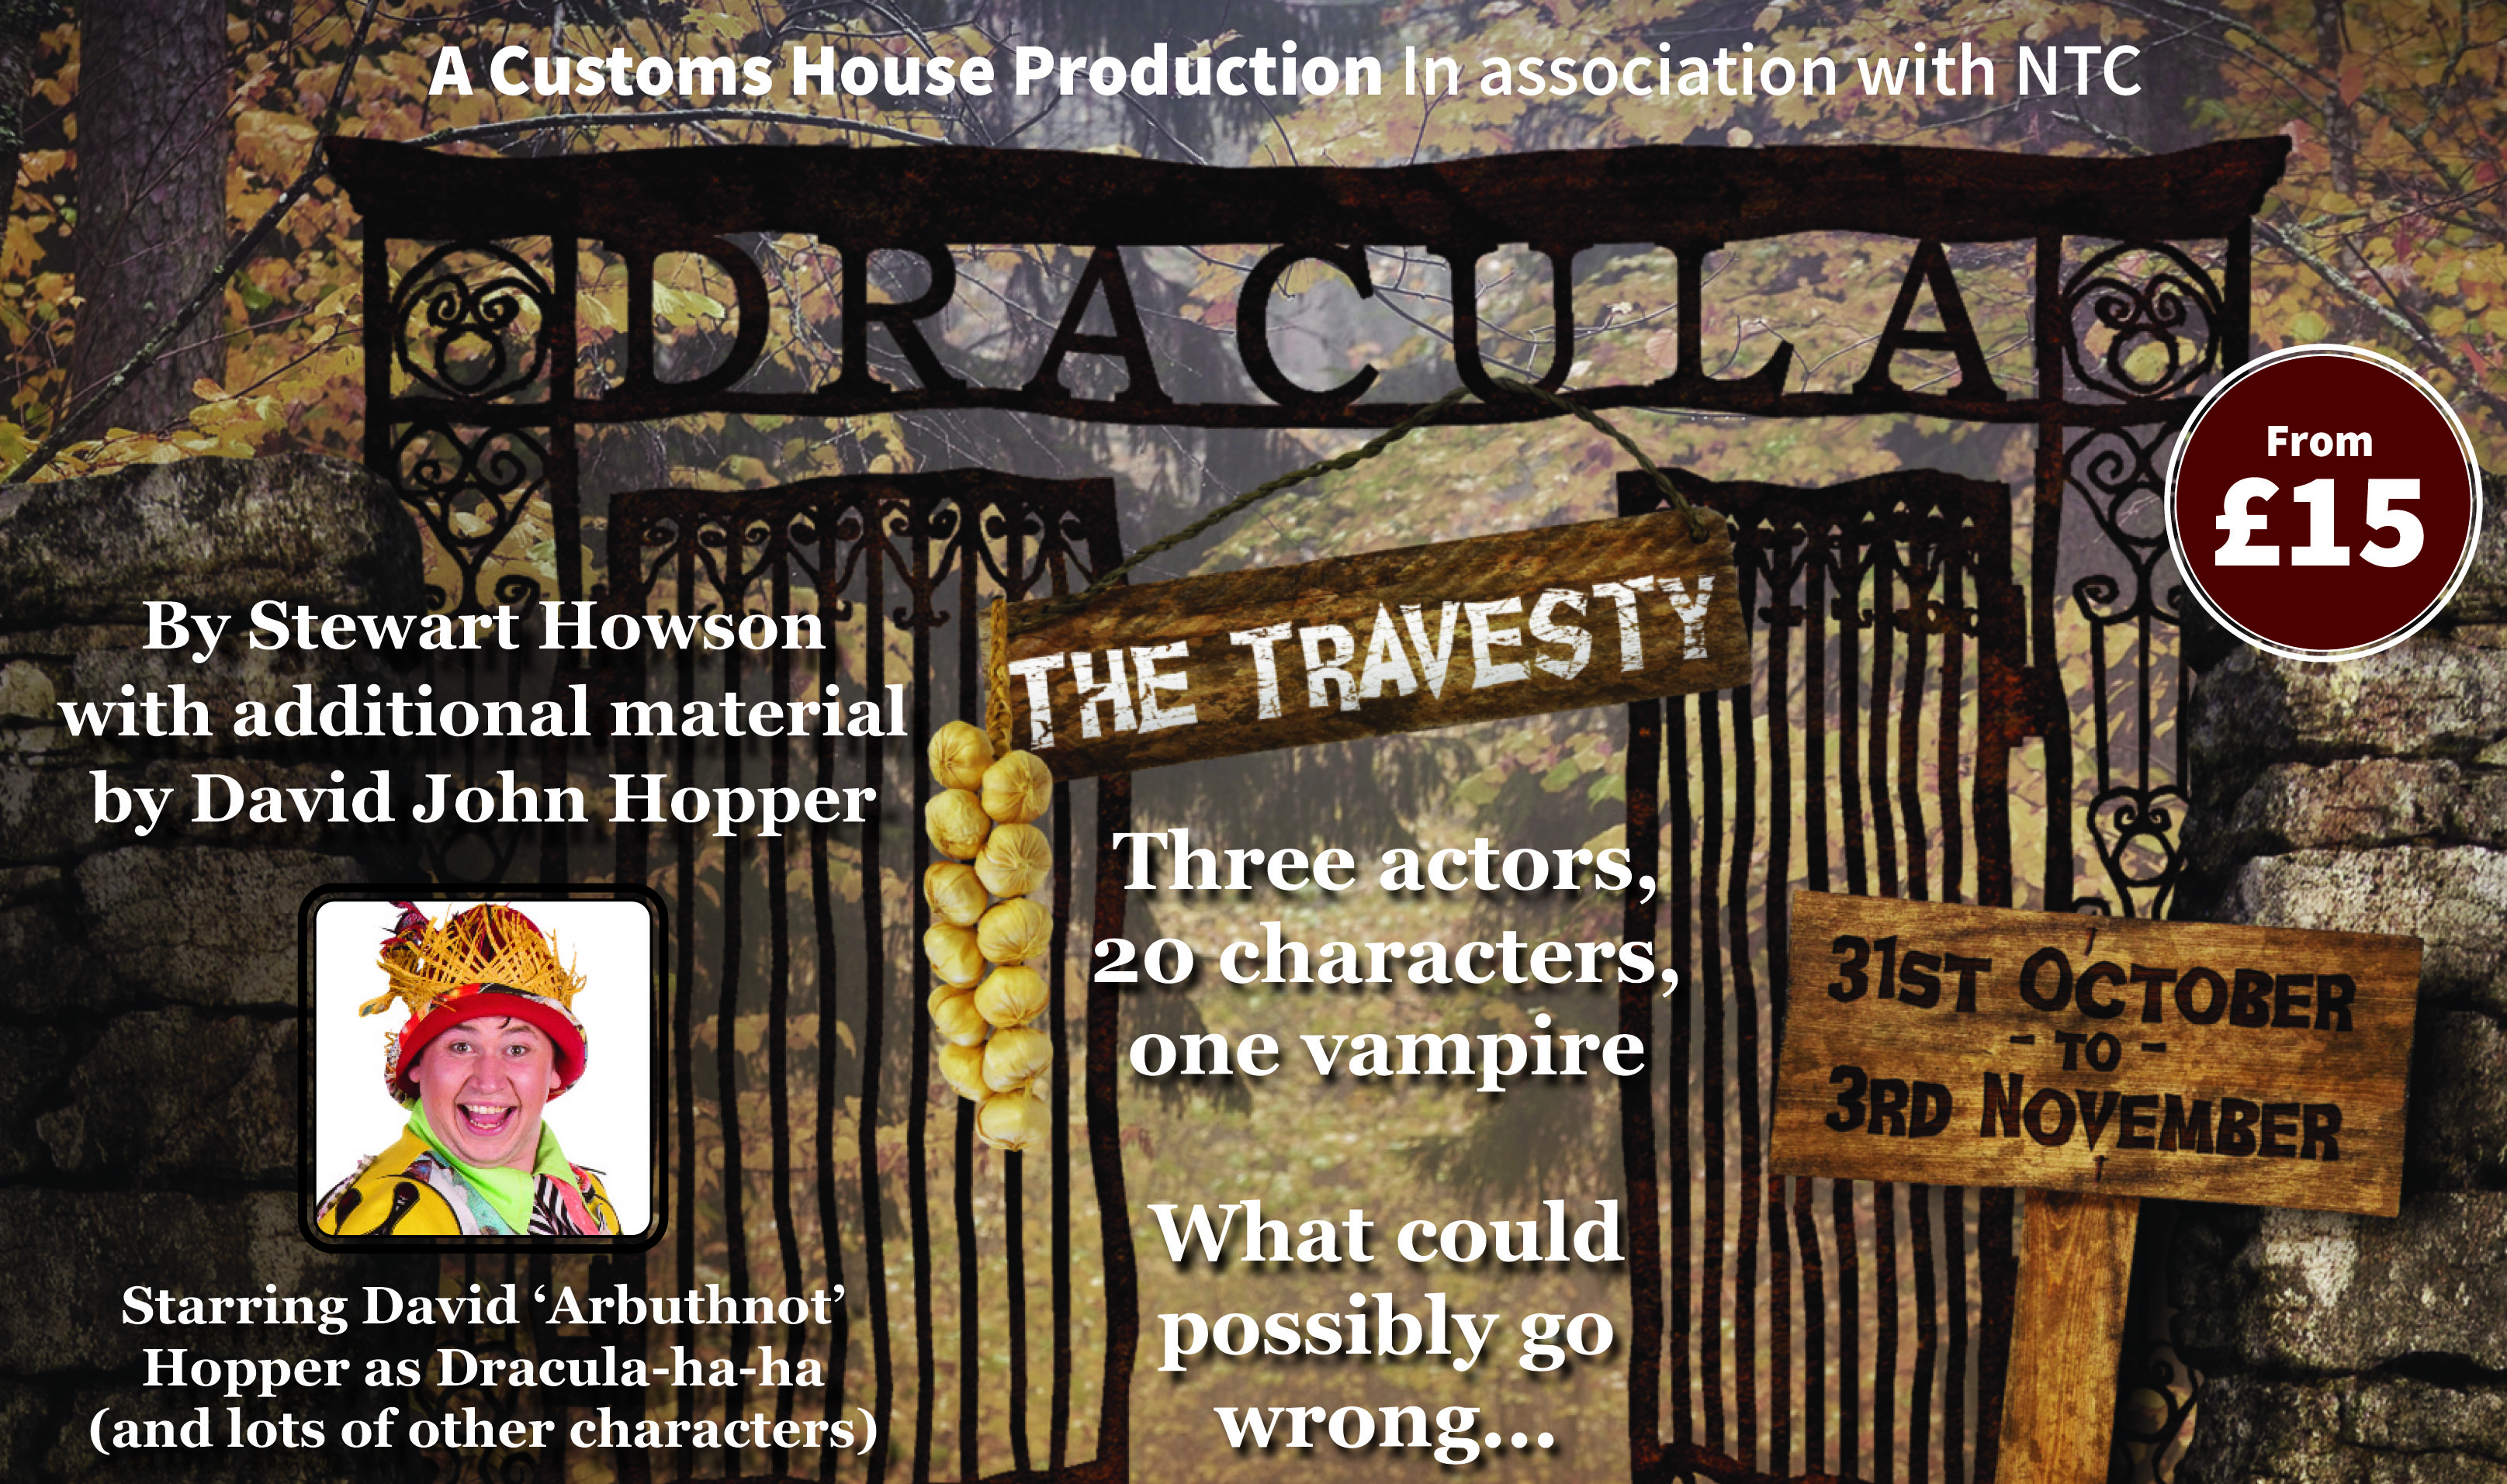 Custom Exhibition Stand Up Comedy : Casting call dracula the travesty the customs house